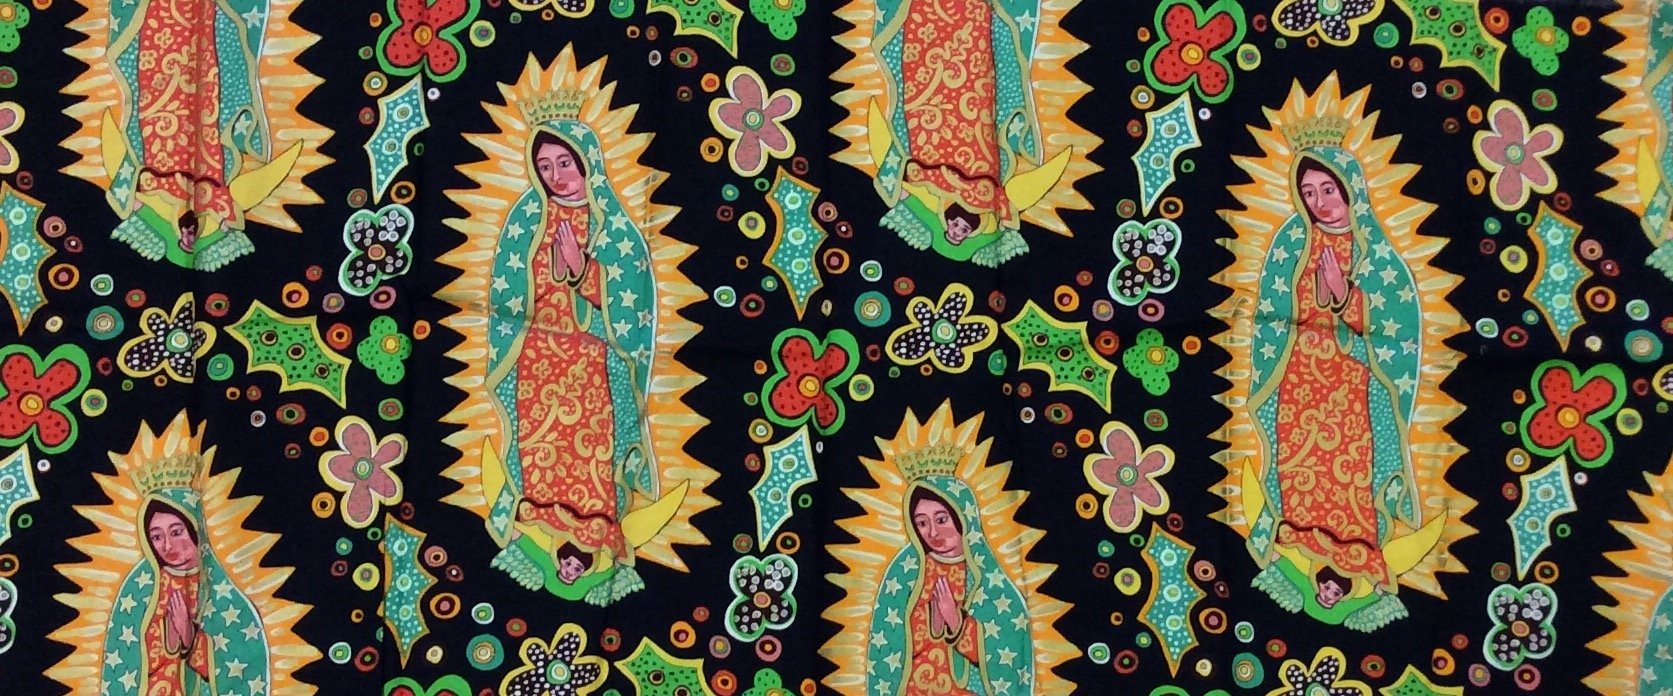 Rare, Out of Print! Black Our Lady of Guadalupe Mexico Terrie Mangat Mexican Religious Flowers Cotton Fabric Quilt Fabric R04 PC3